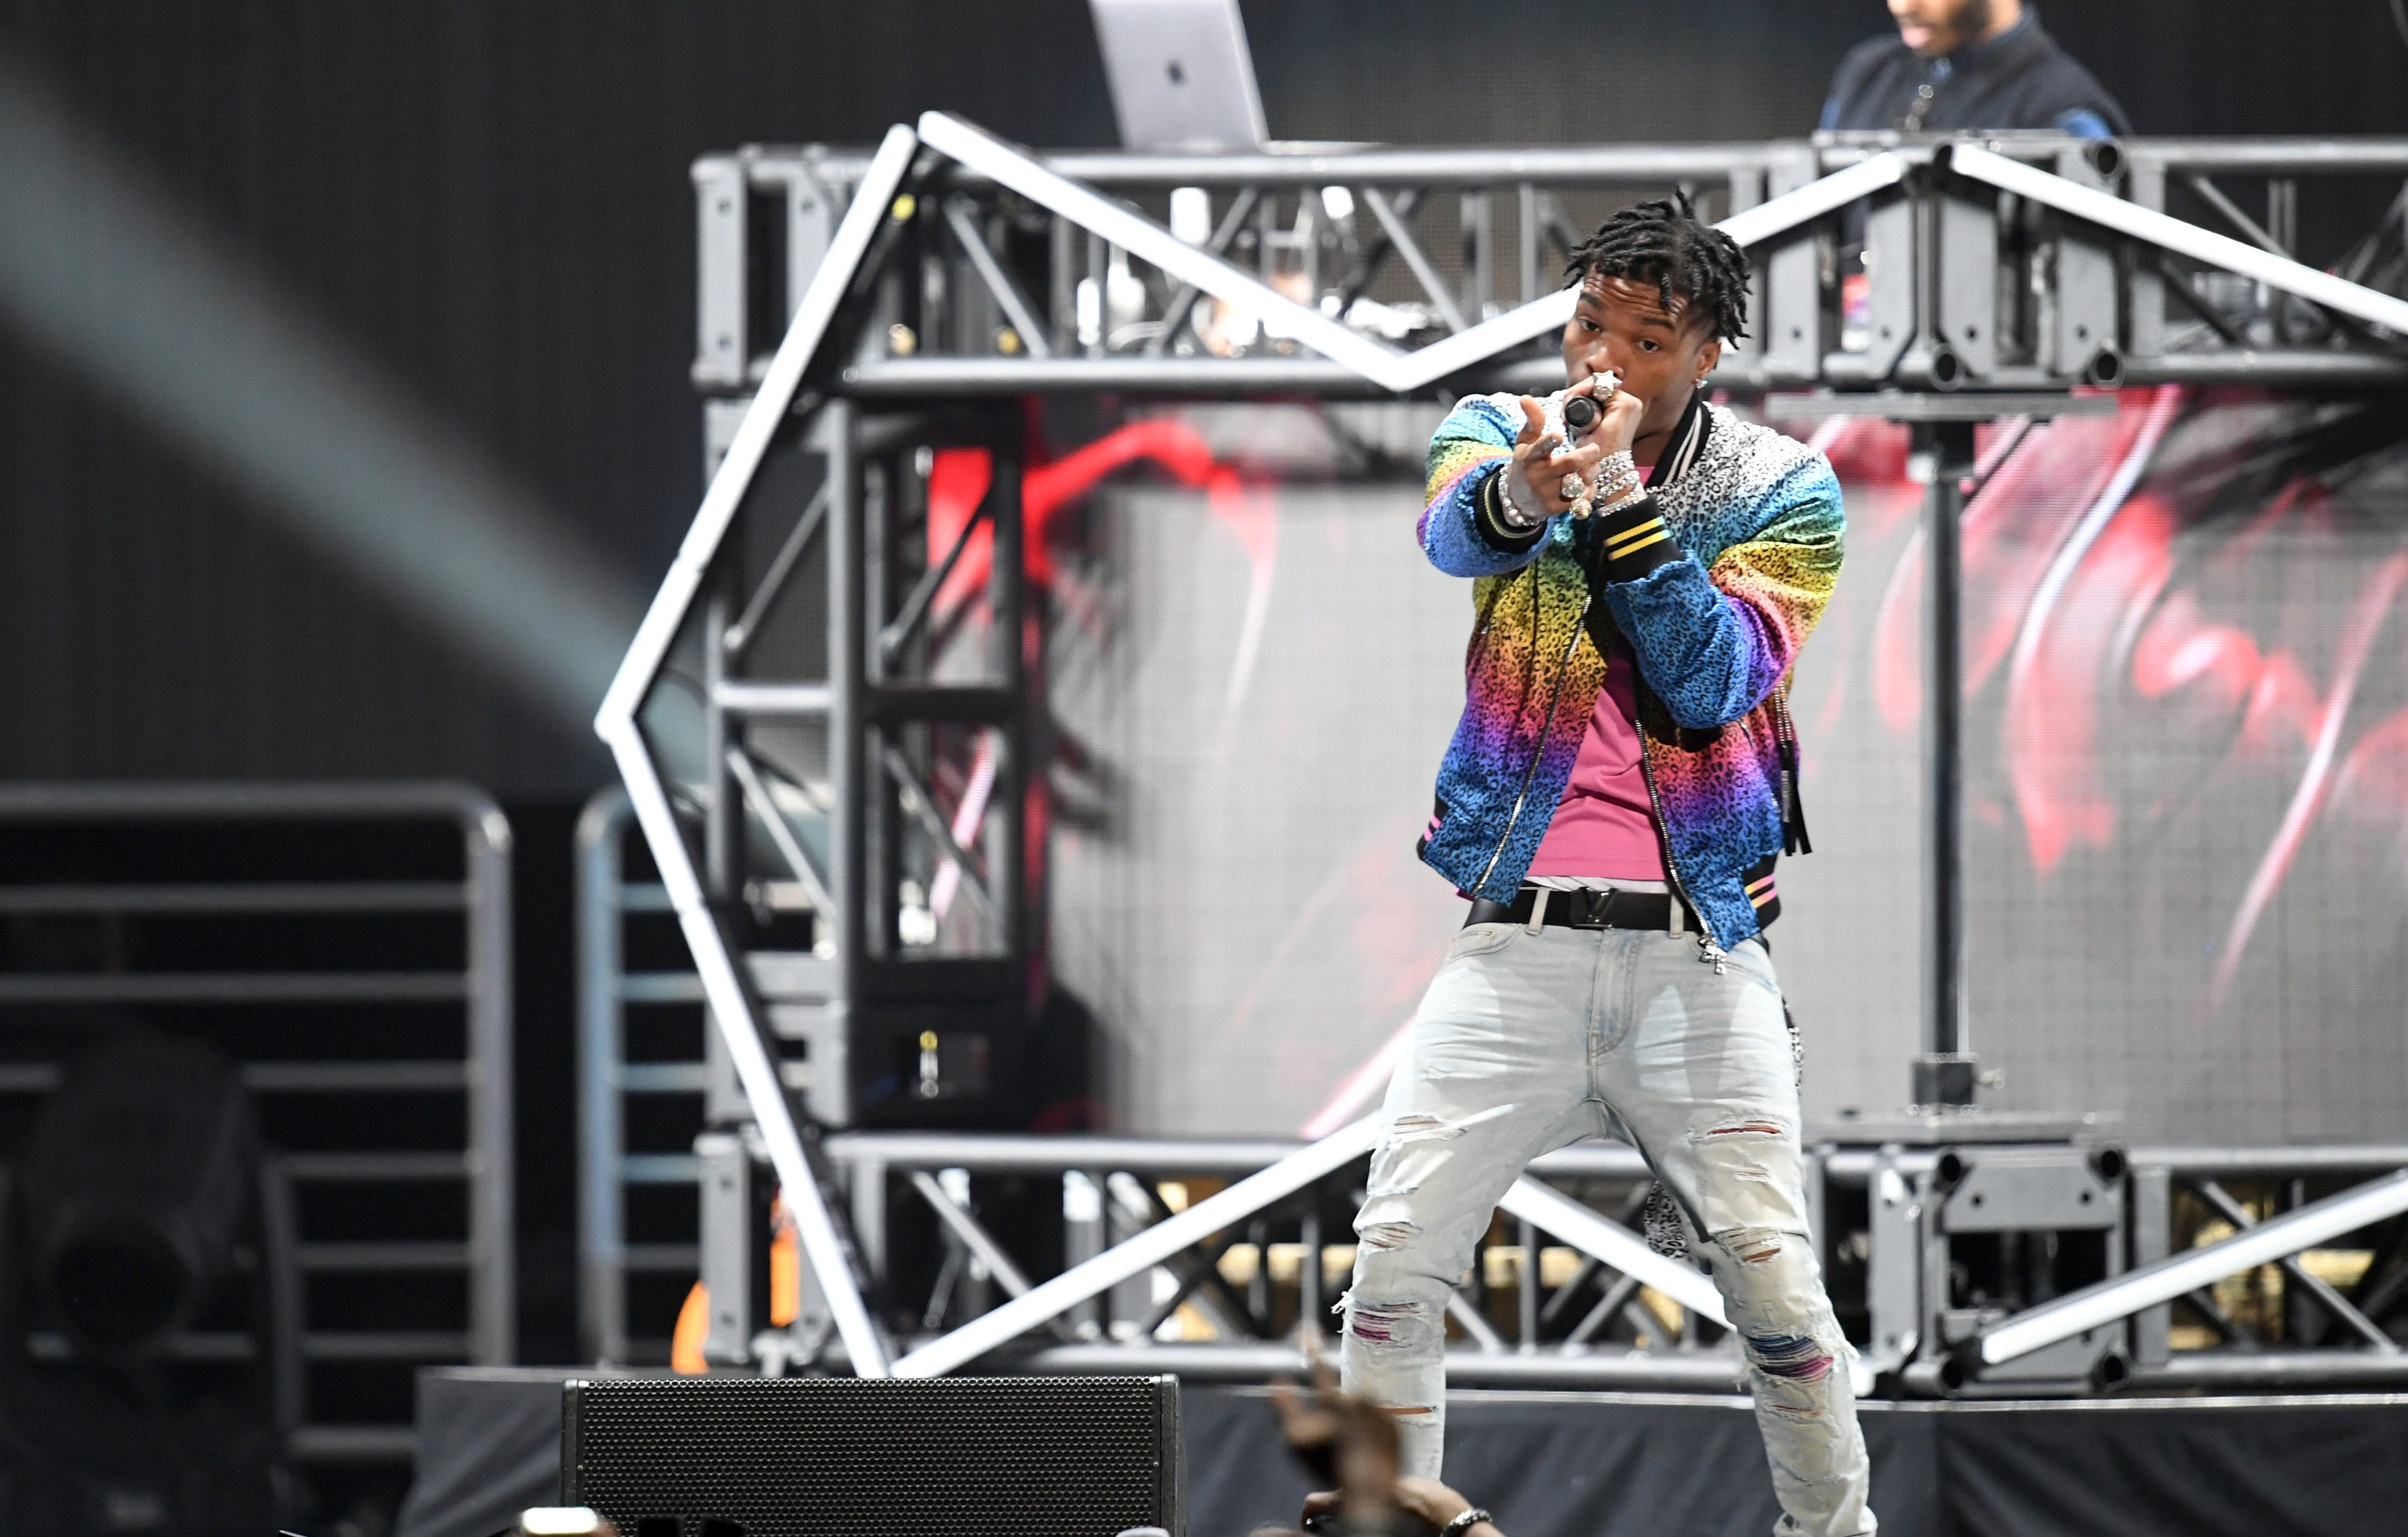 Rapper Lil Baby arrested in Atlanta for reckless driving and eluding police